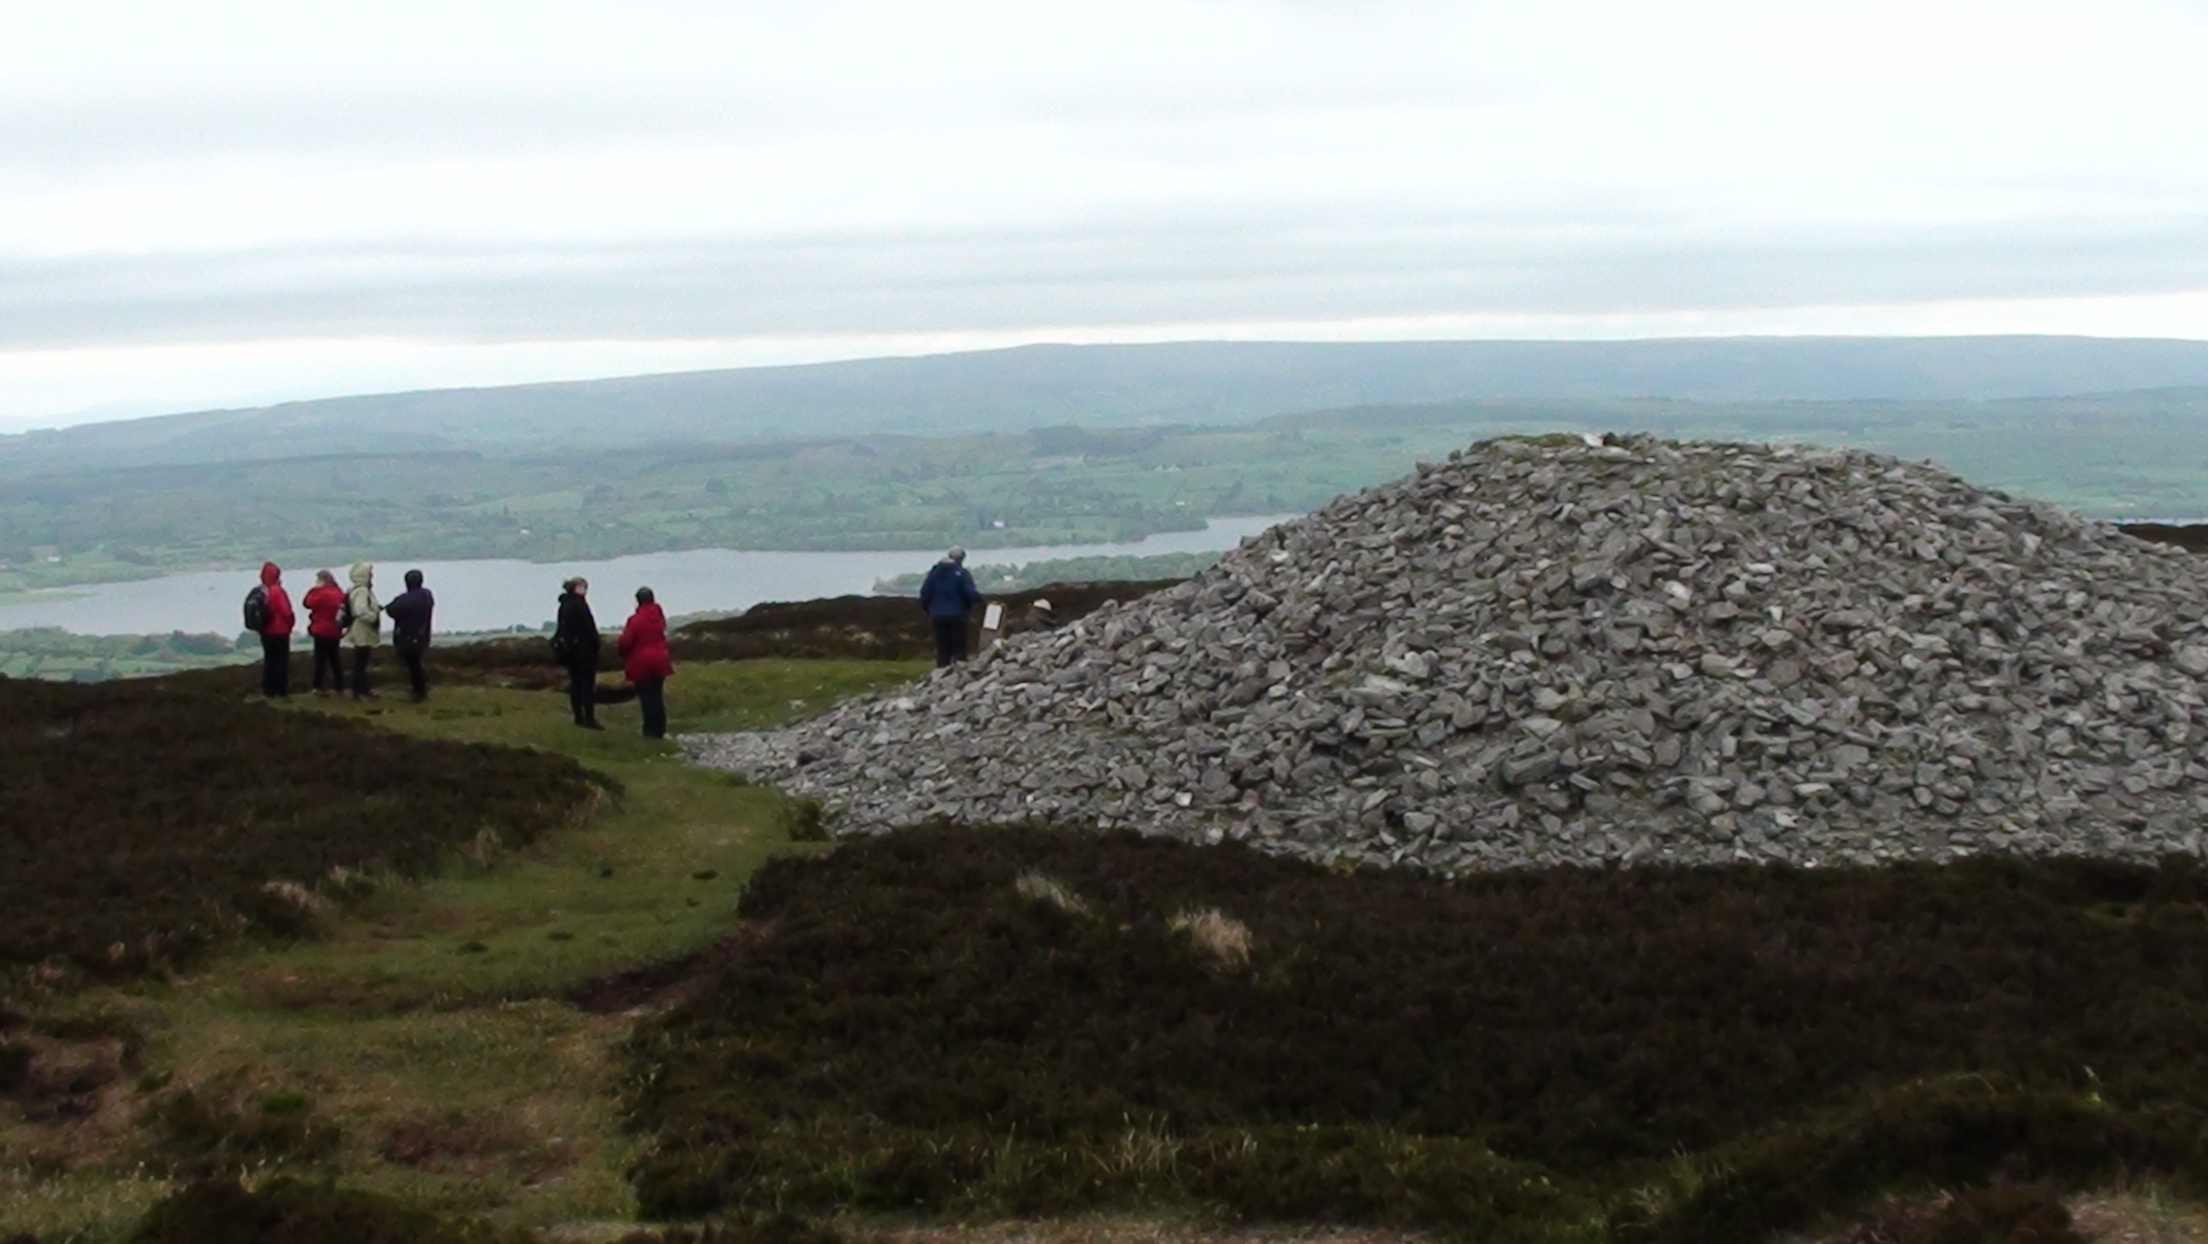 Neolithic site of Carrowkeel in the Bricklieve Mountains